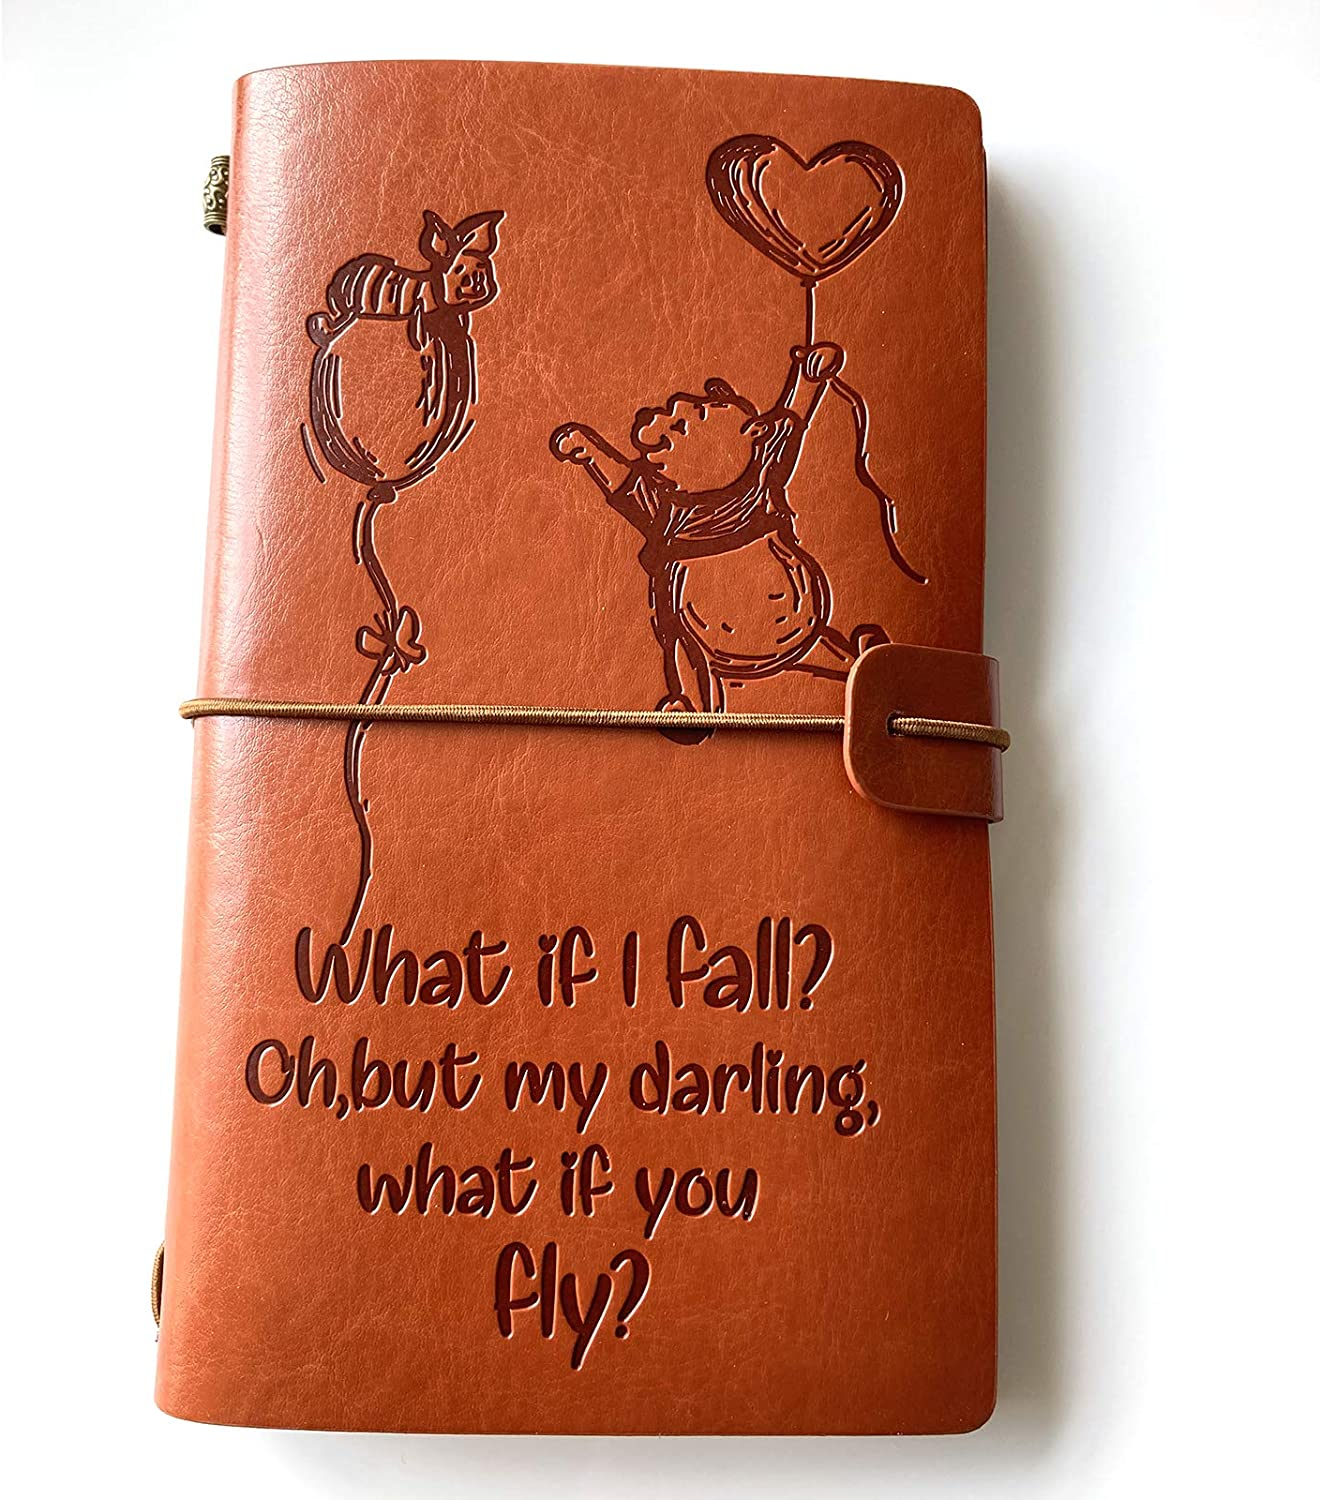 Max 40% OFF Inspirational Winnie The Pooh Quotes fo Translated Notebook Journal Leather